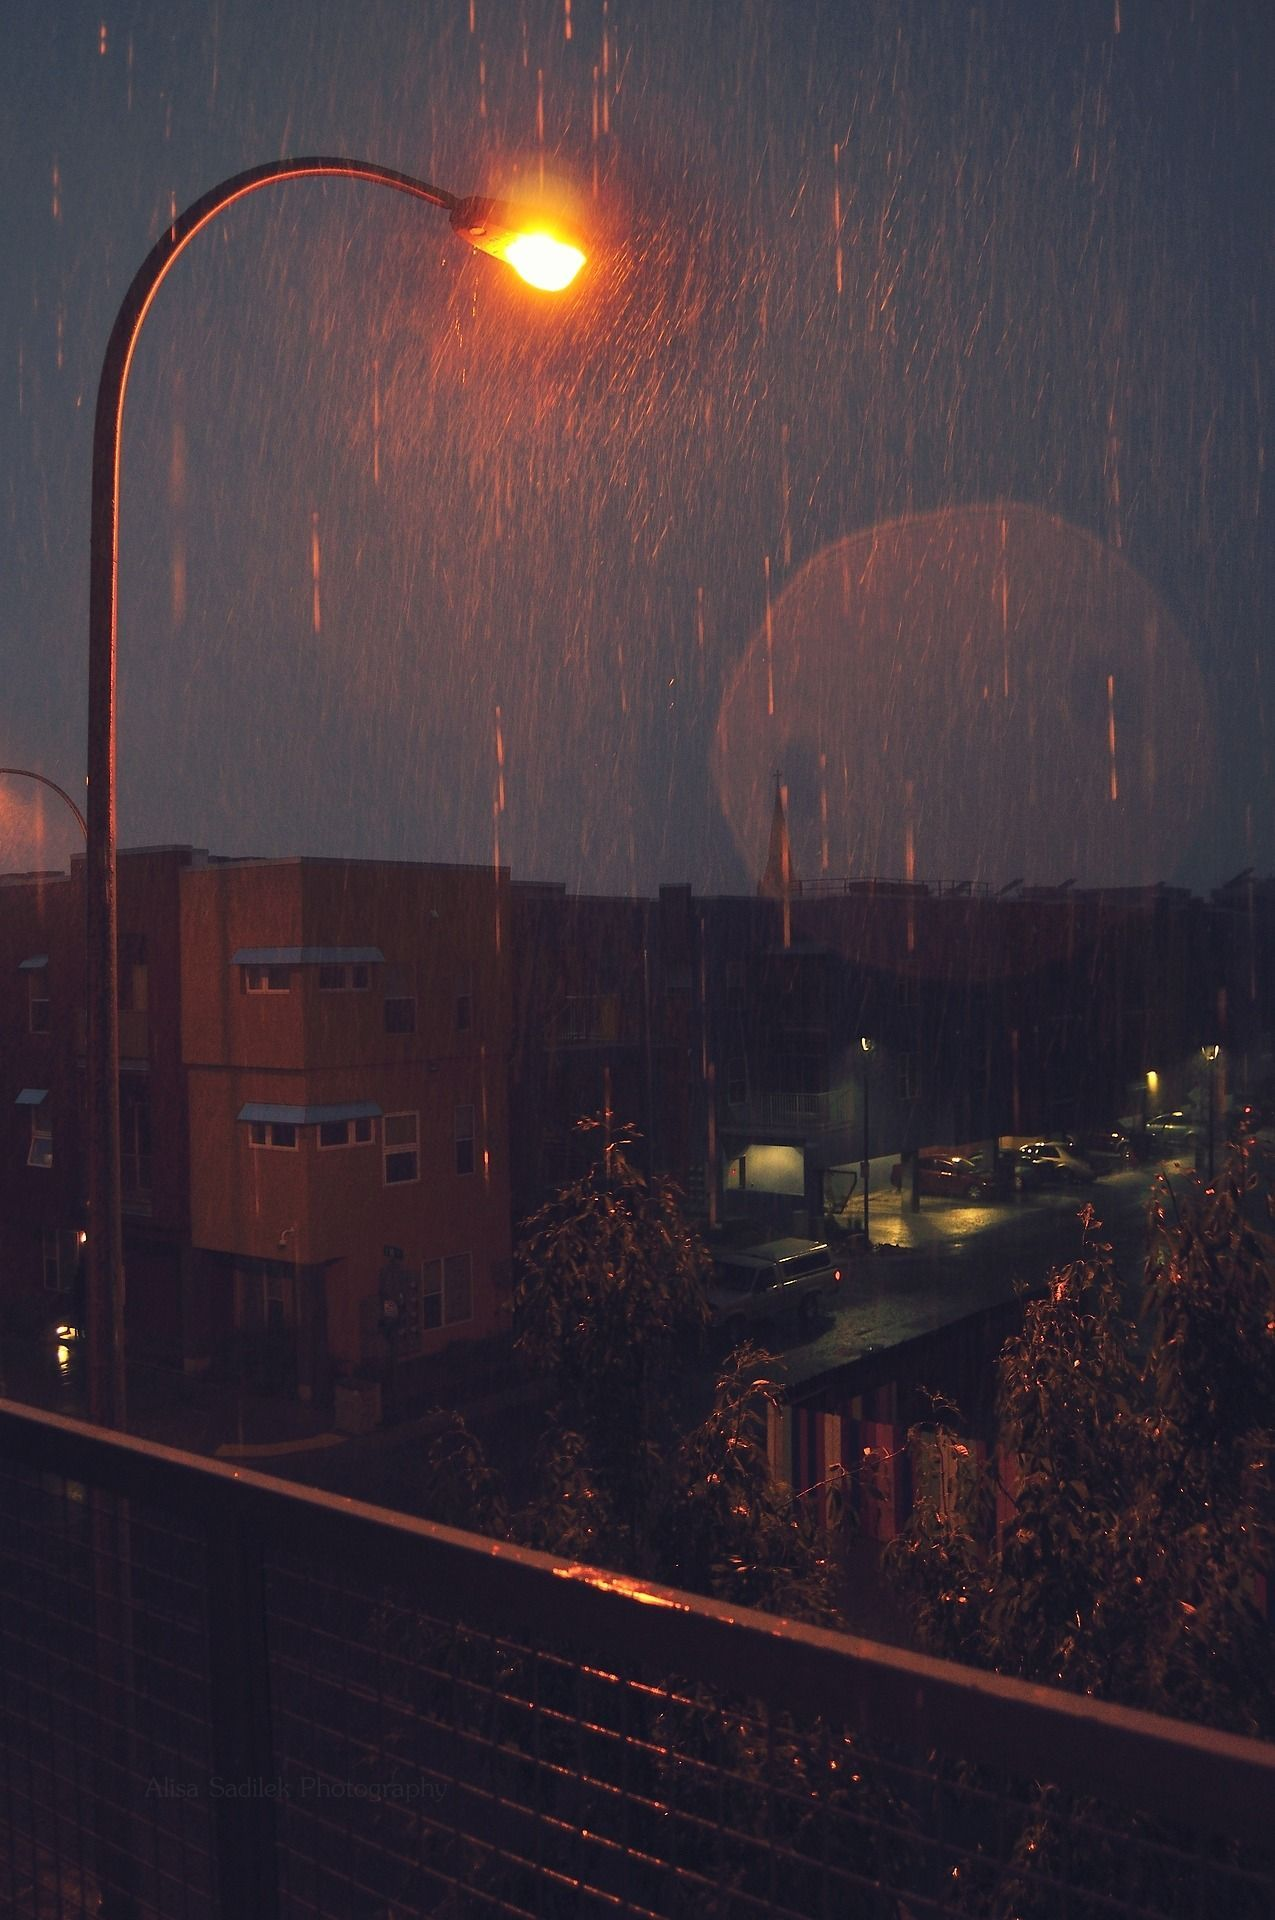 Aesthetic Rain Night Wallpapers 1275x1920